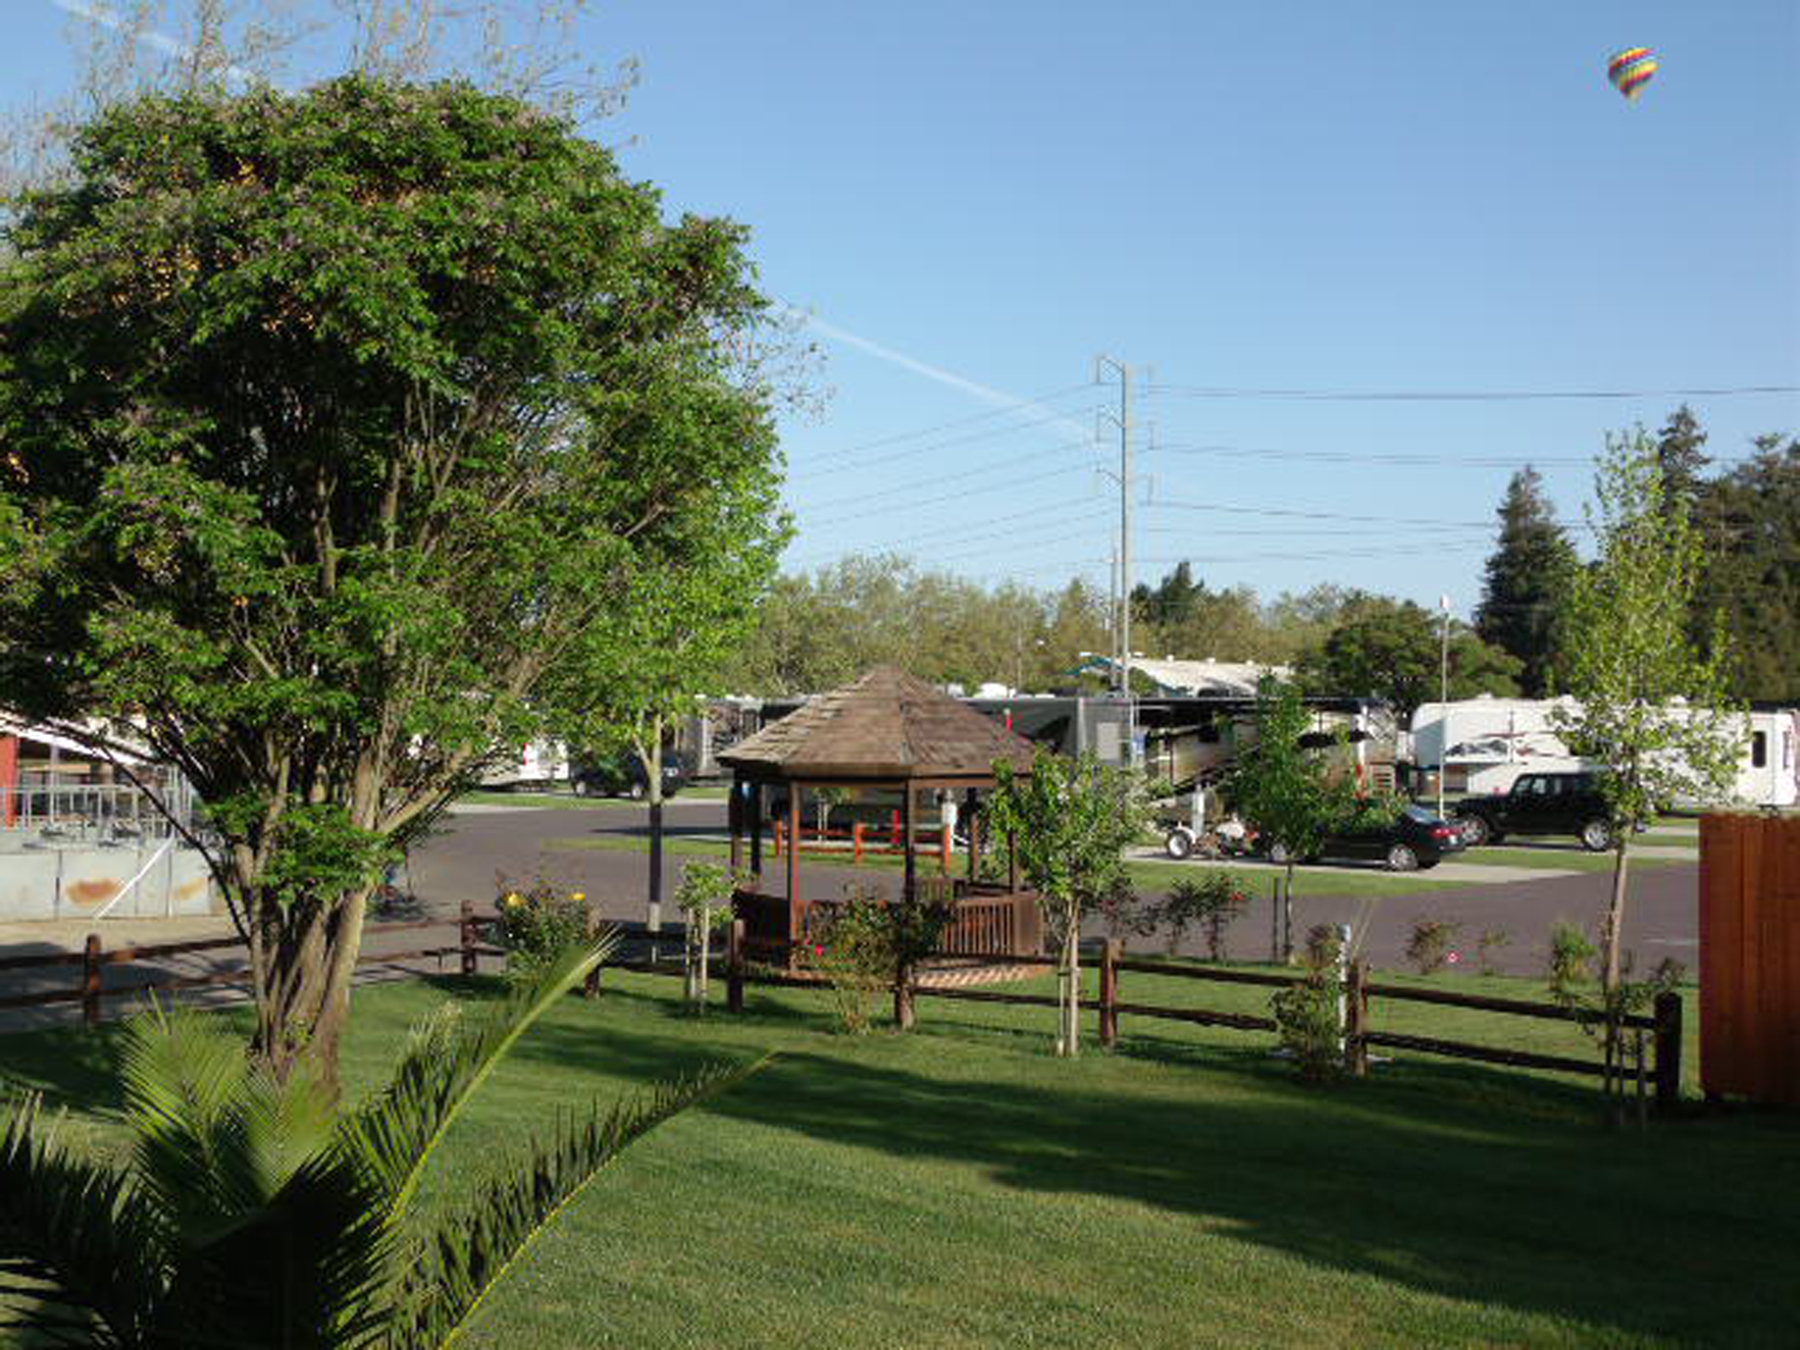 Napa Valley Expo The RV Park